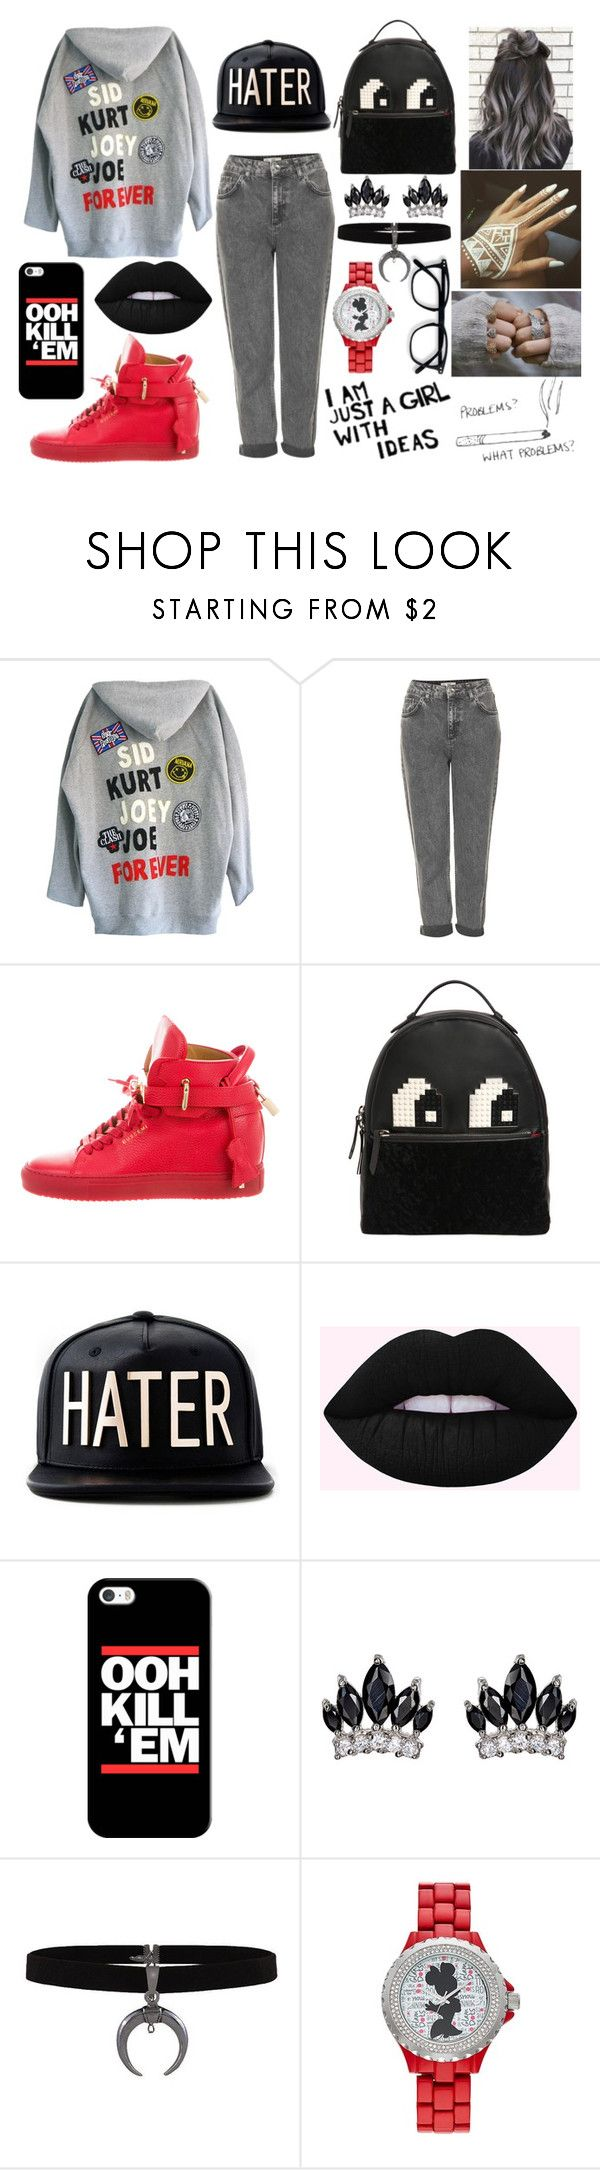 """Problems? What Problems?"" by elizabetta-i ❤ liked on Polyvore featuring High Heels Suicide, Topshop, BUSCEMI, Les Petits Joueurs, Casetify, Fallon and Disney"